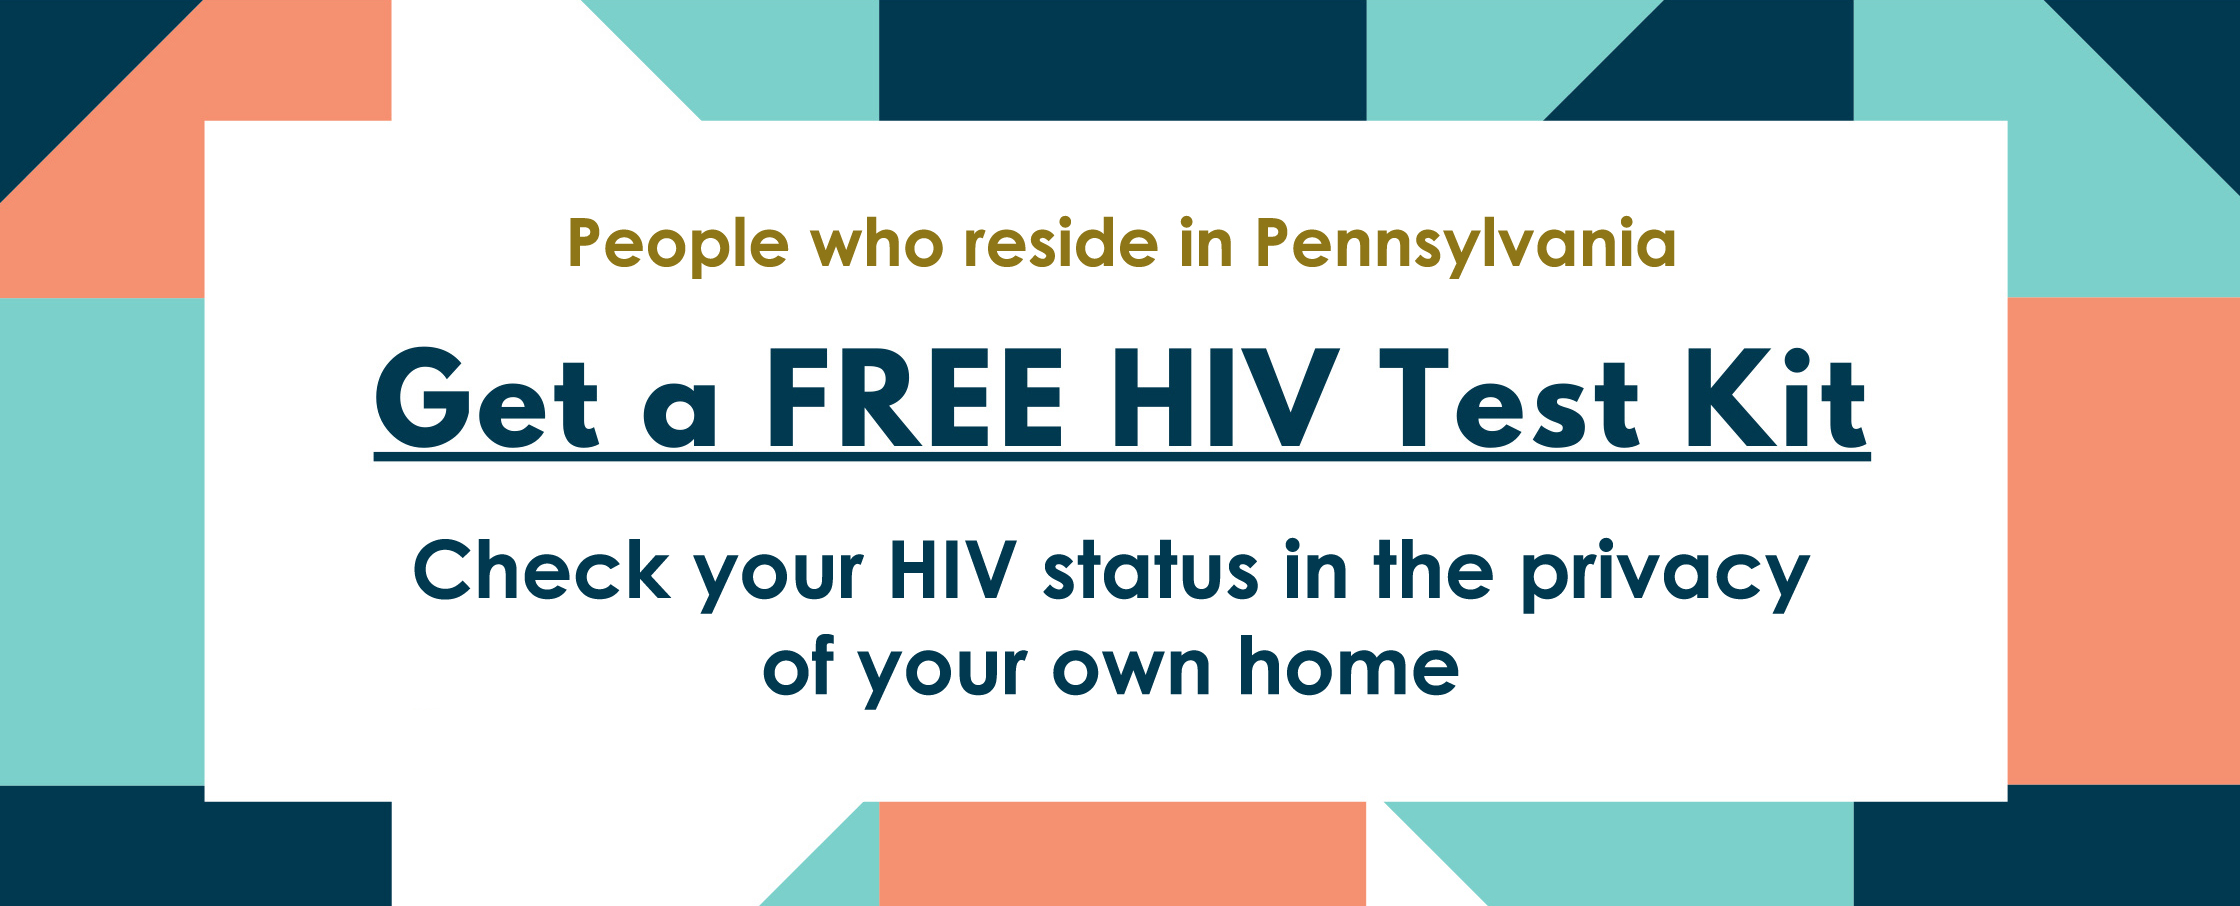 Banner stating People who reside in Pennsylvania get a free HIV test kit. Check your status in the privacy of your own home